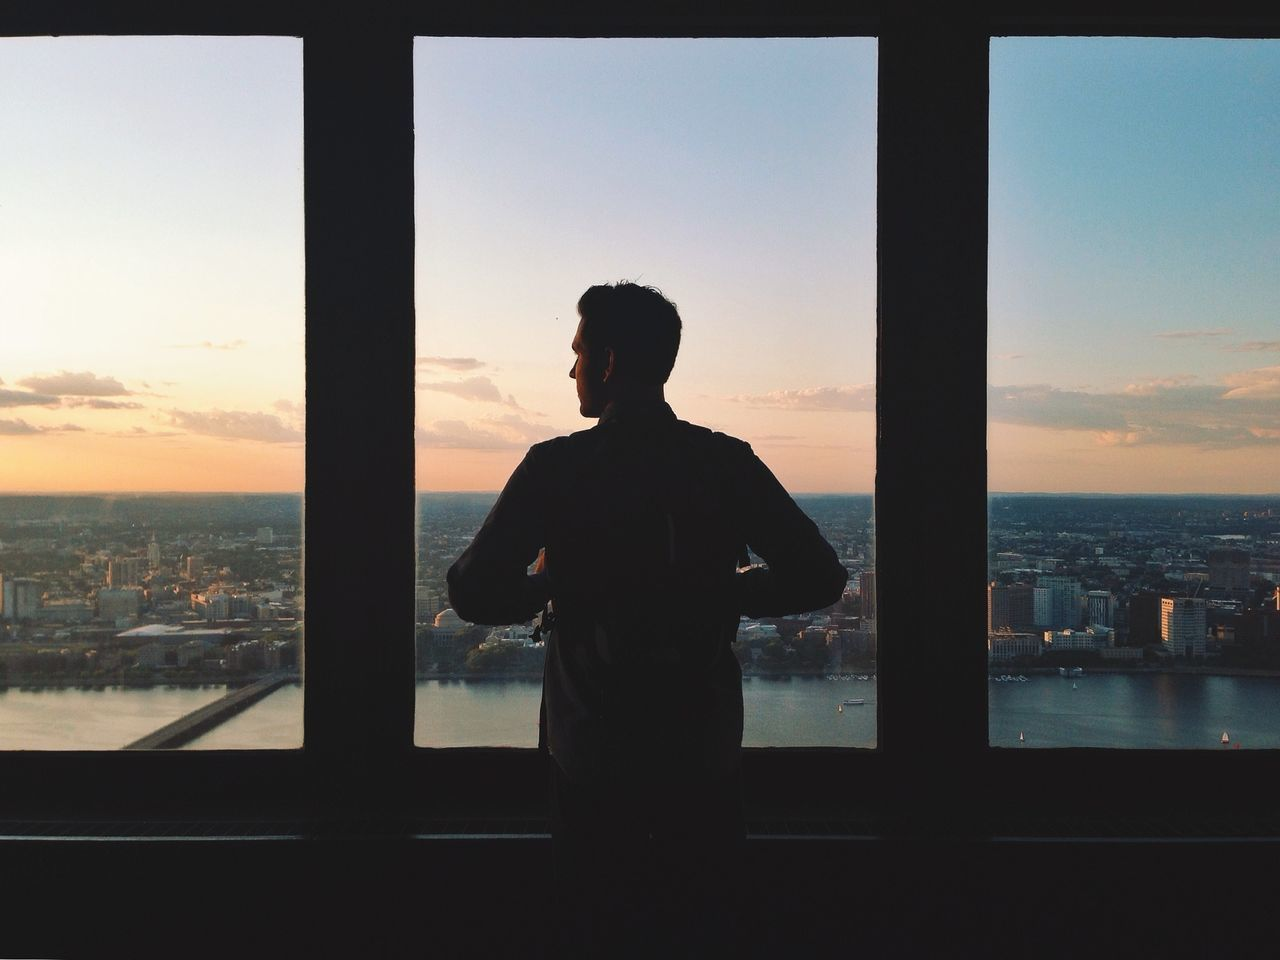 Rear view of man standing by window looking at city during sunset